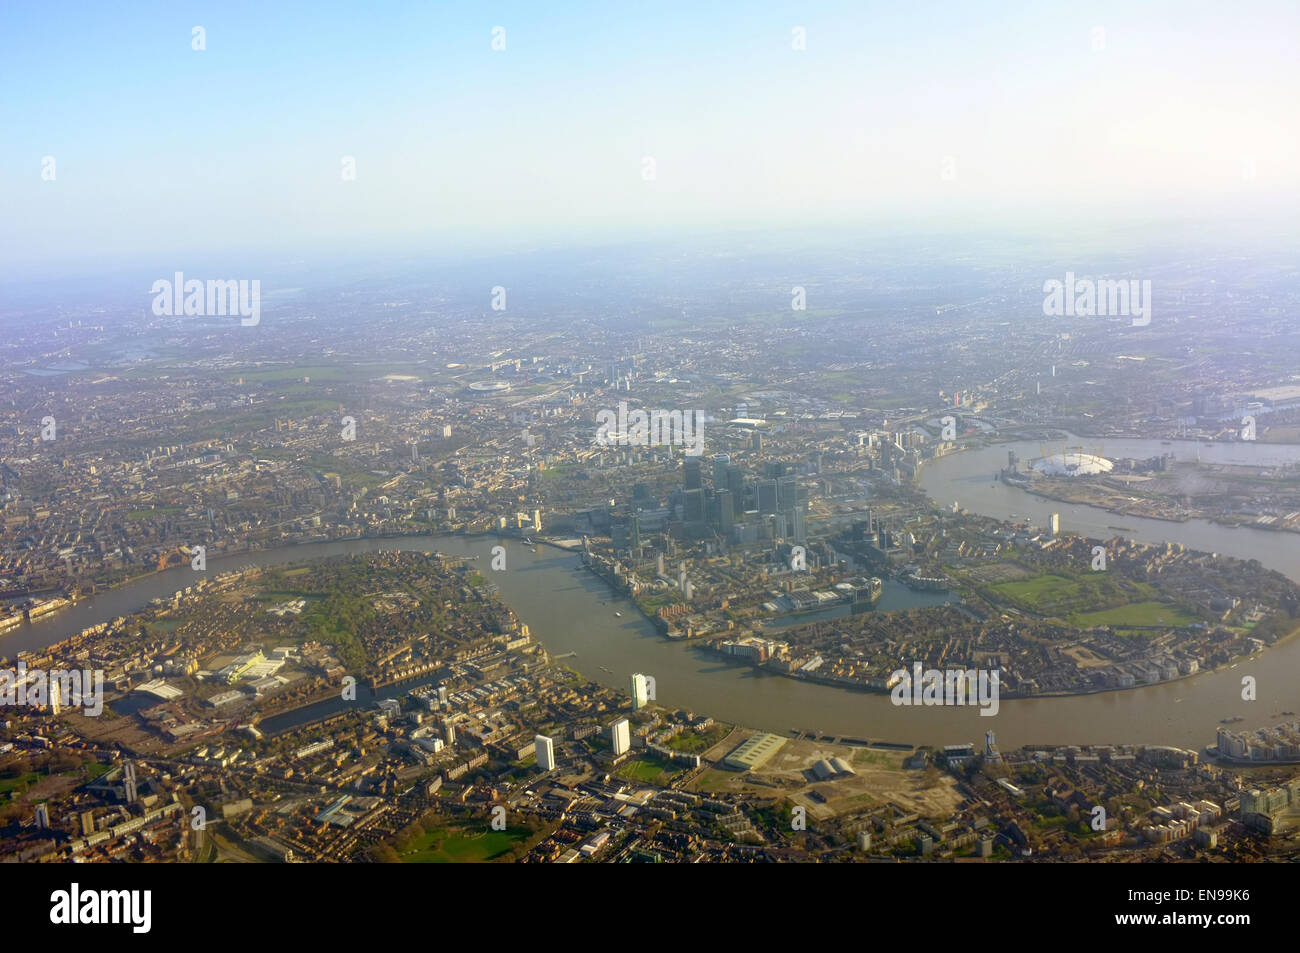 An aerial view of London taken from an aircraft approaching to land at Heathrow Airport. - Stock Image